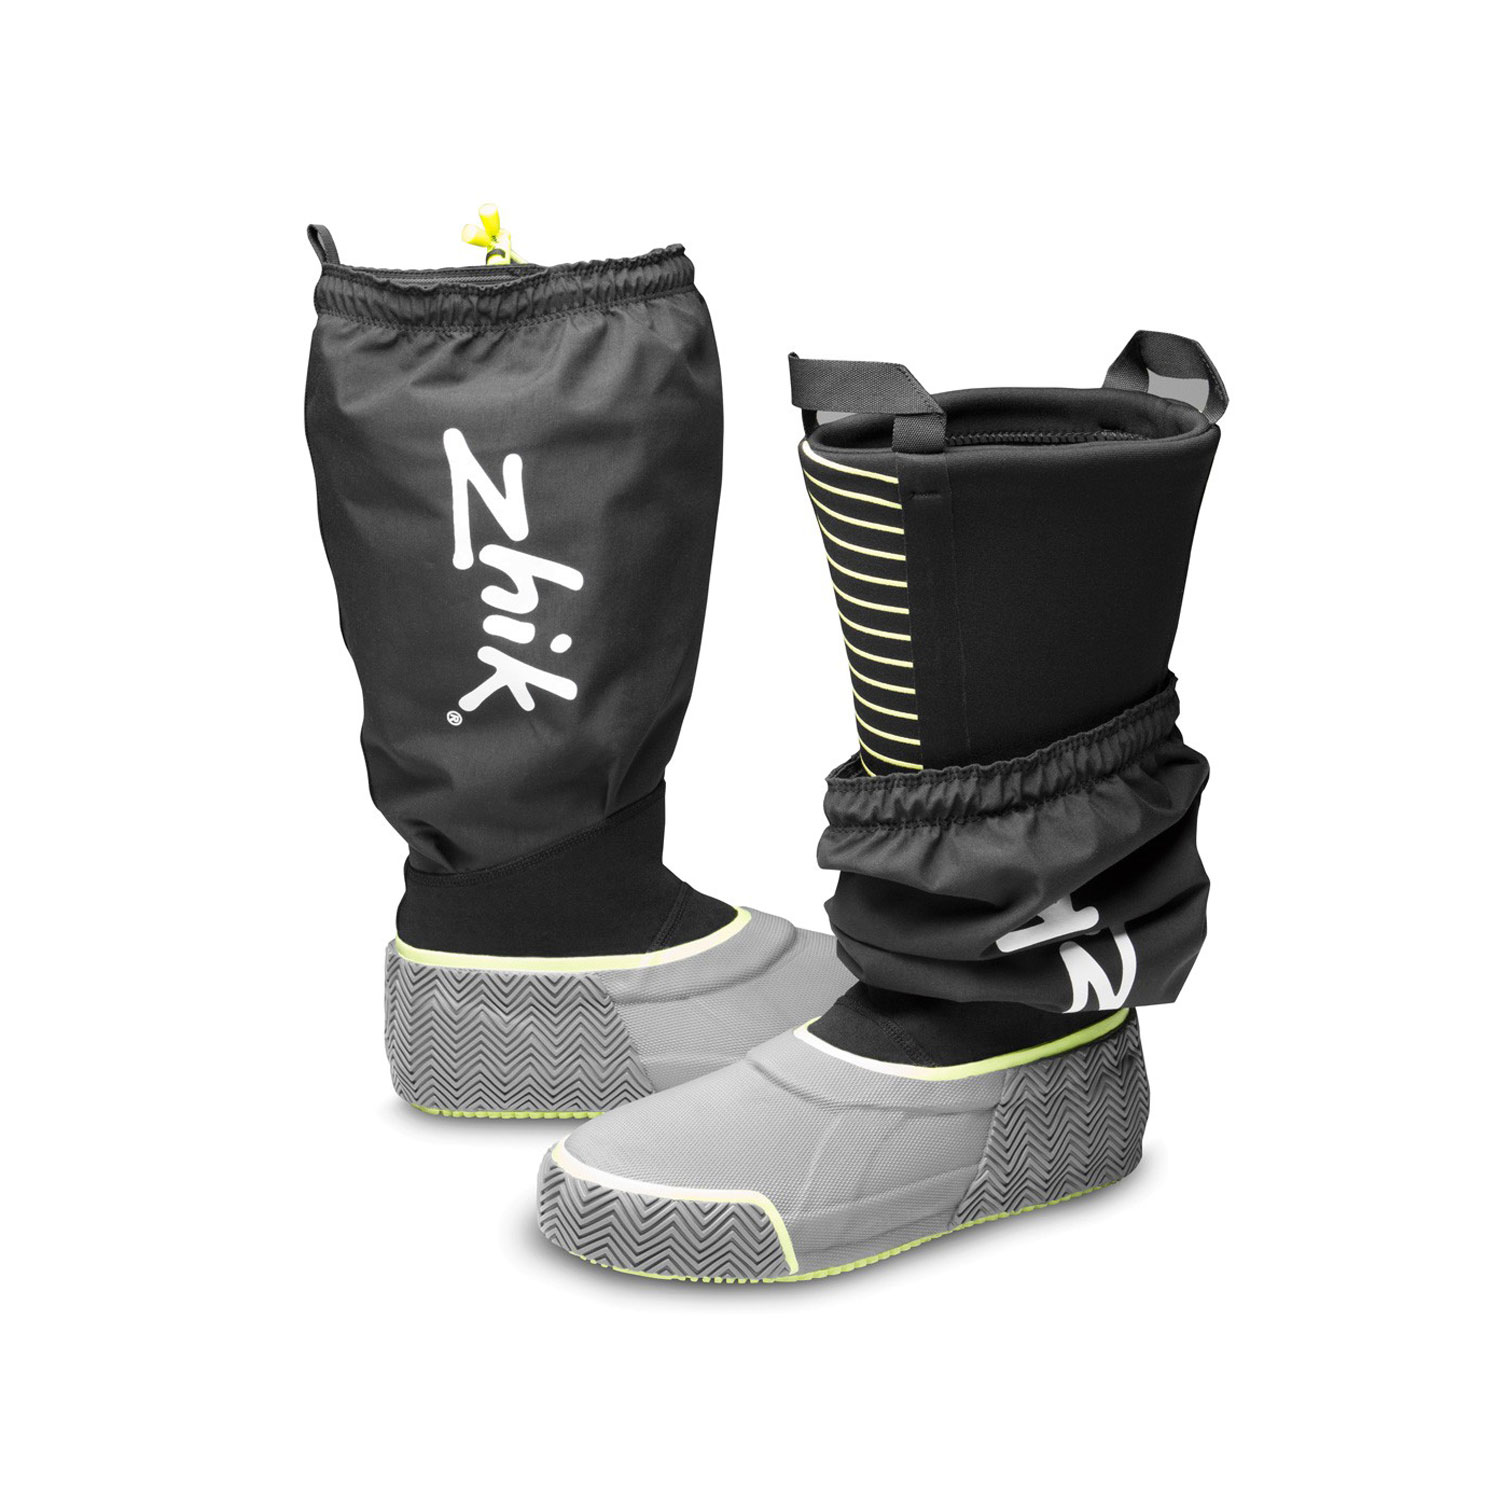 Ocean Kayak For Sale >> Zhik ZK Seaboot 800 Sailing Boots | Coast Water Sports